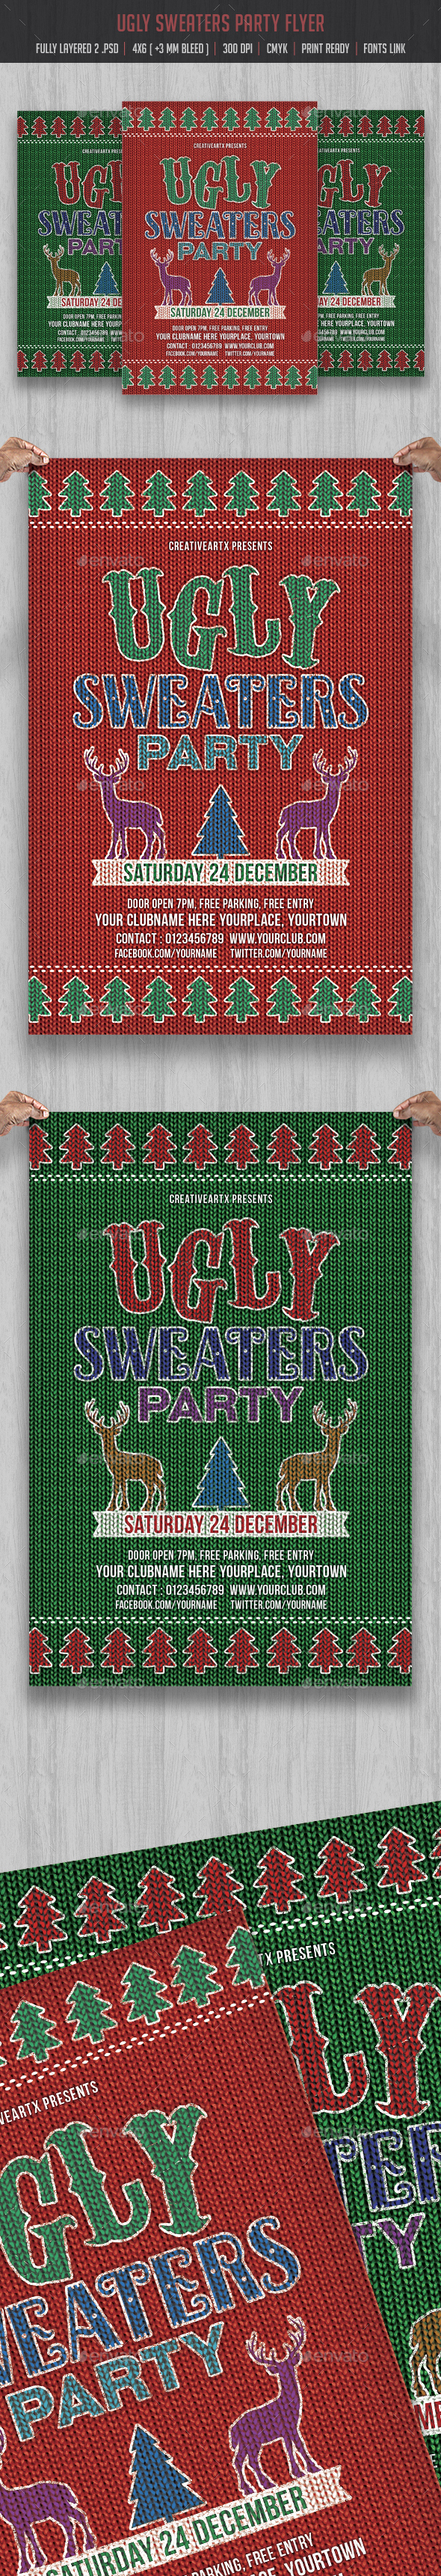 Ugly Sweaters Party Flyer - Events Flyers